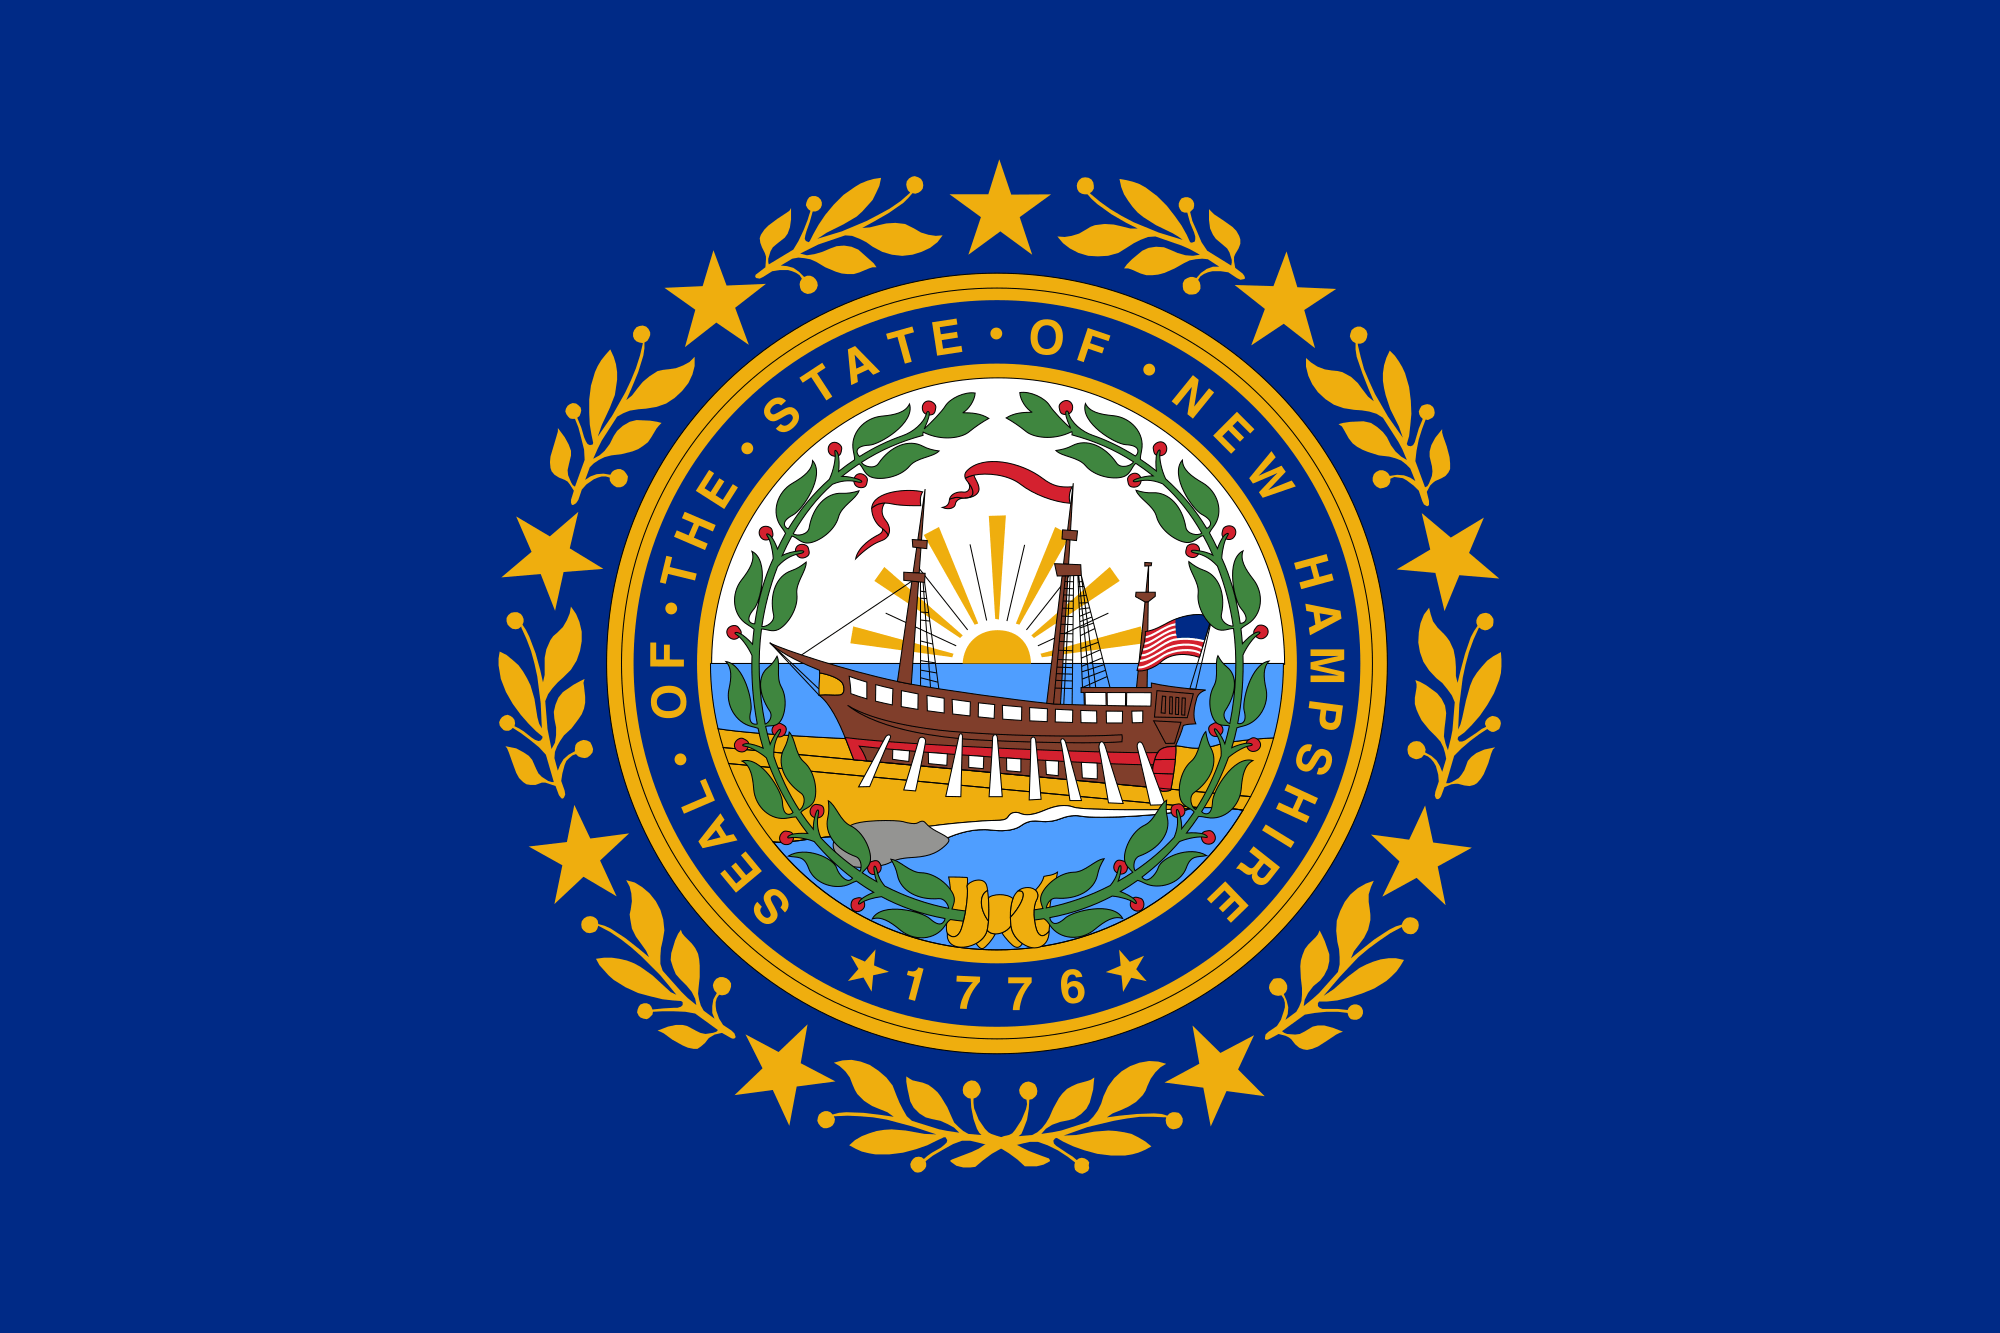 New Hampshire Online Gambling 2020